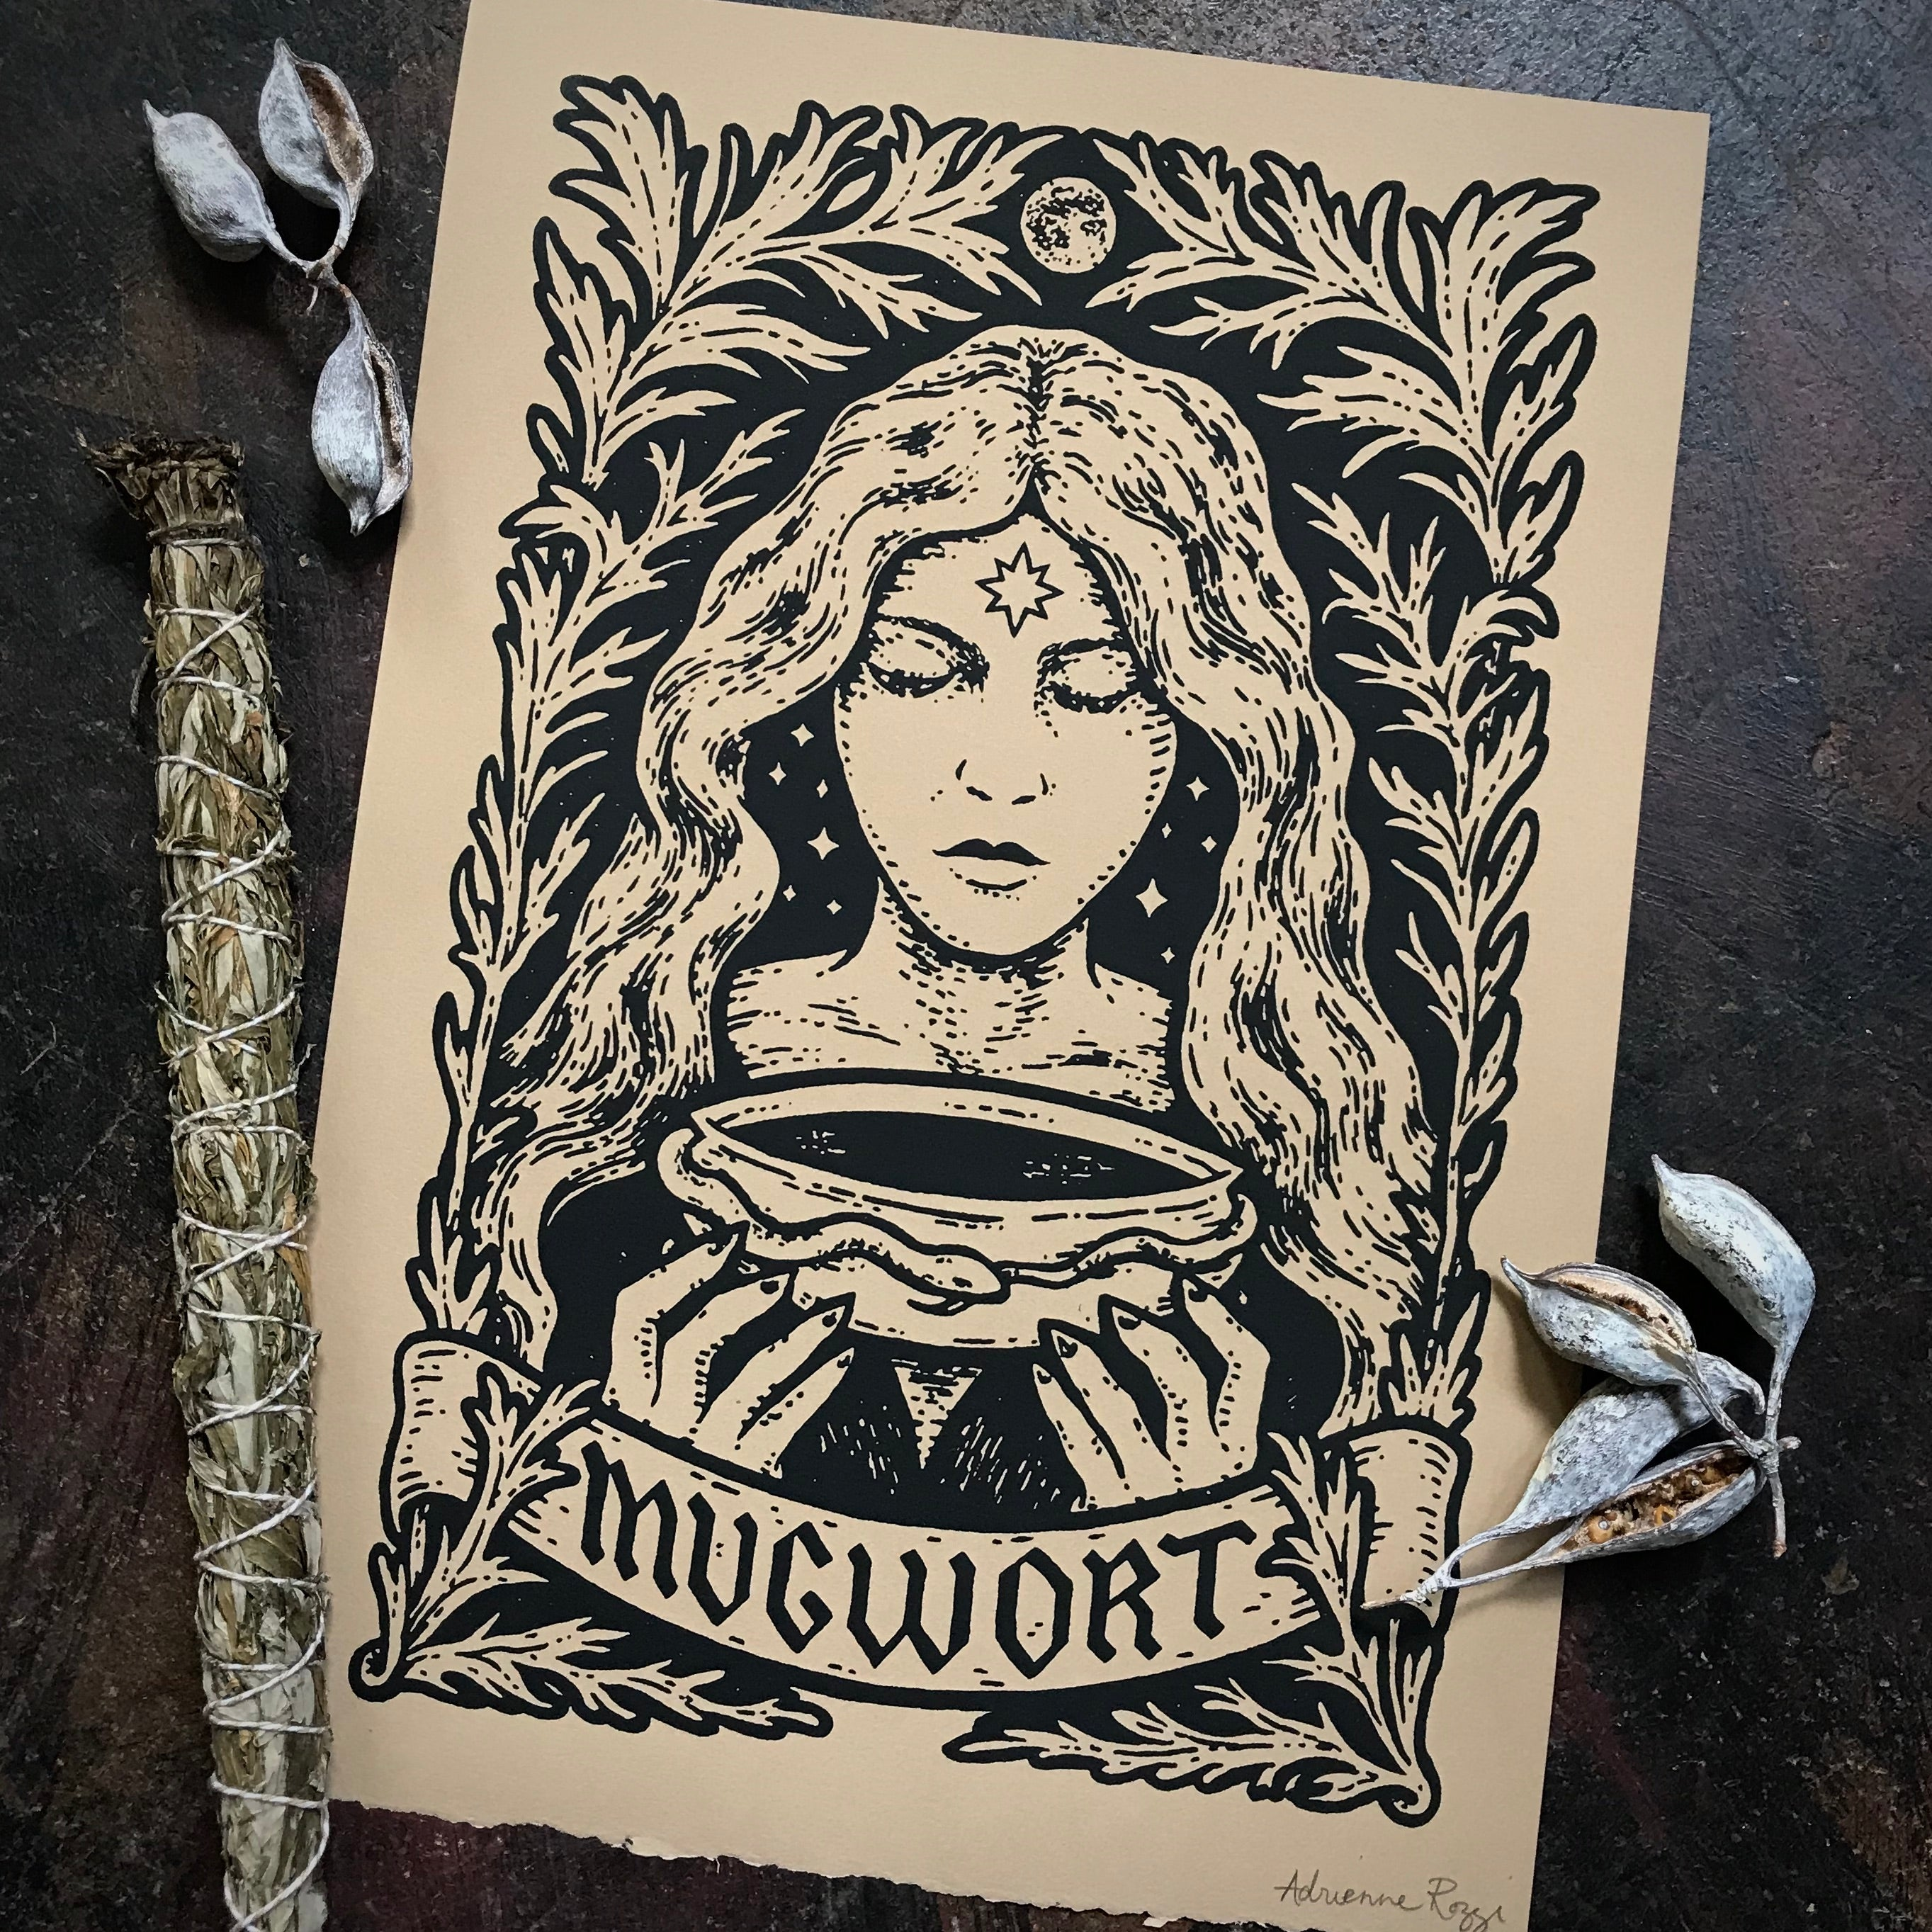 Mugwort screen print